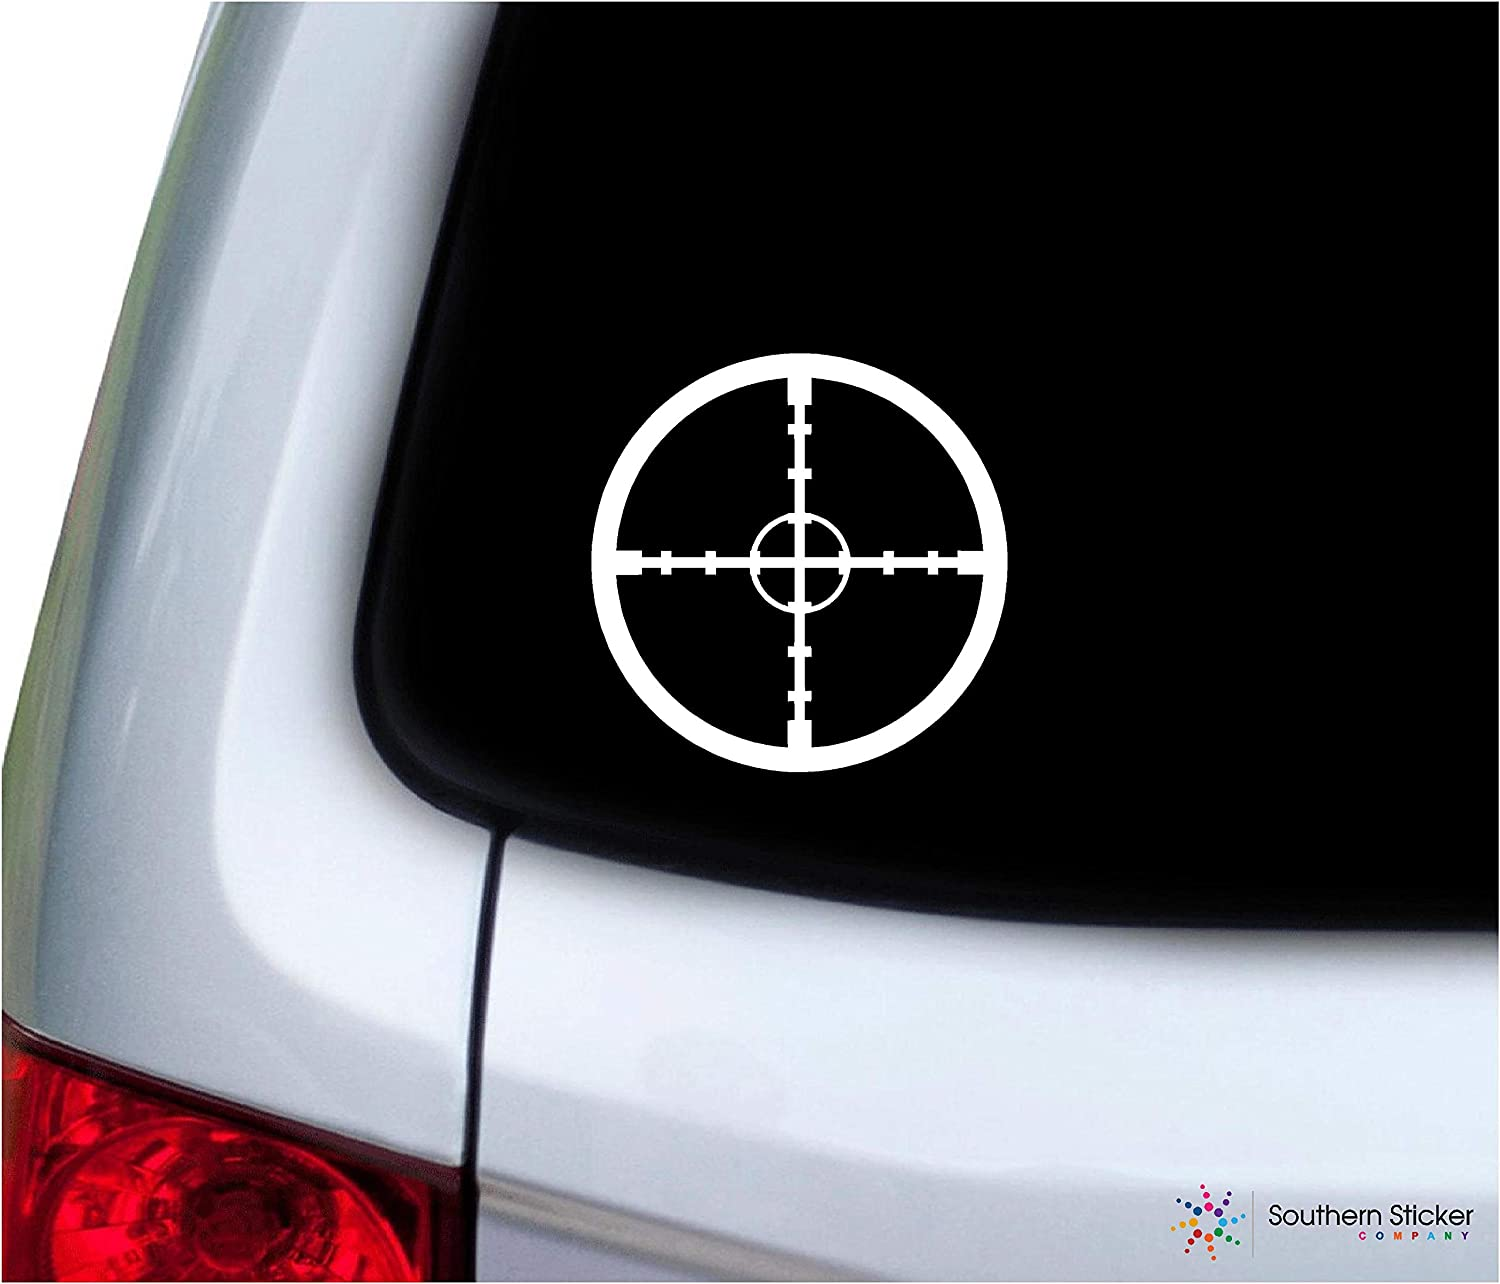 Southern Sticker Company Cross Hairs Gun Scope Target 3.9x3.9 inches Size Rifle Hunting Decal Vinyl Laptop car Window Truck - Made and Shipped in USA (White)